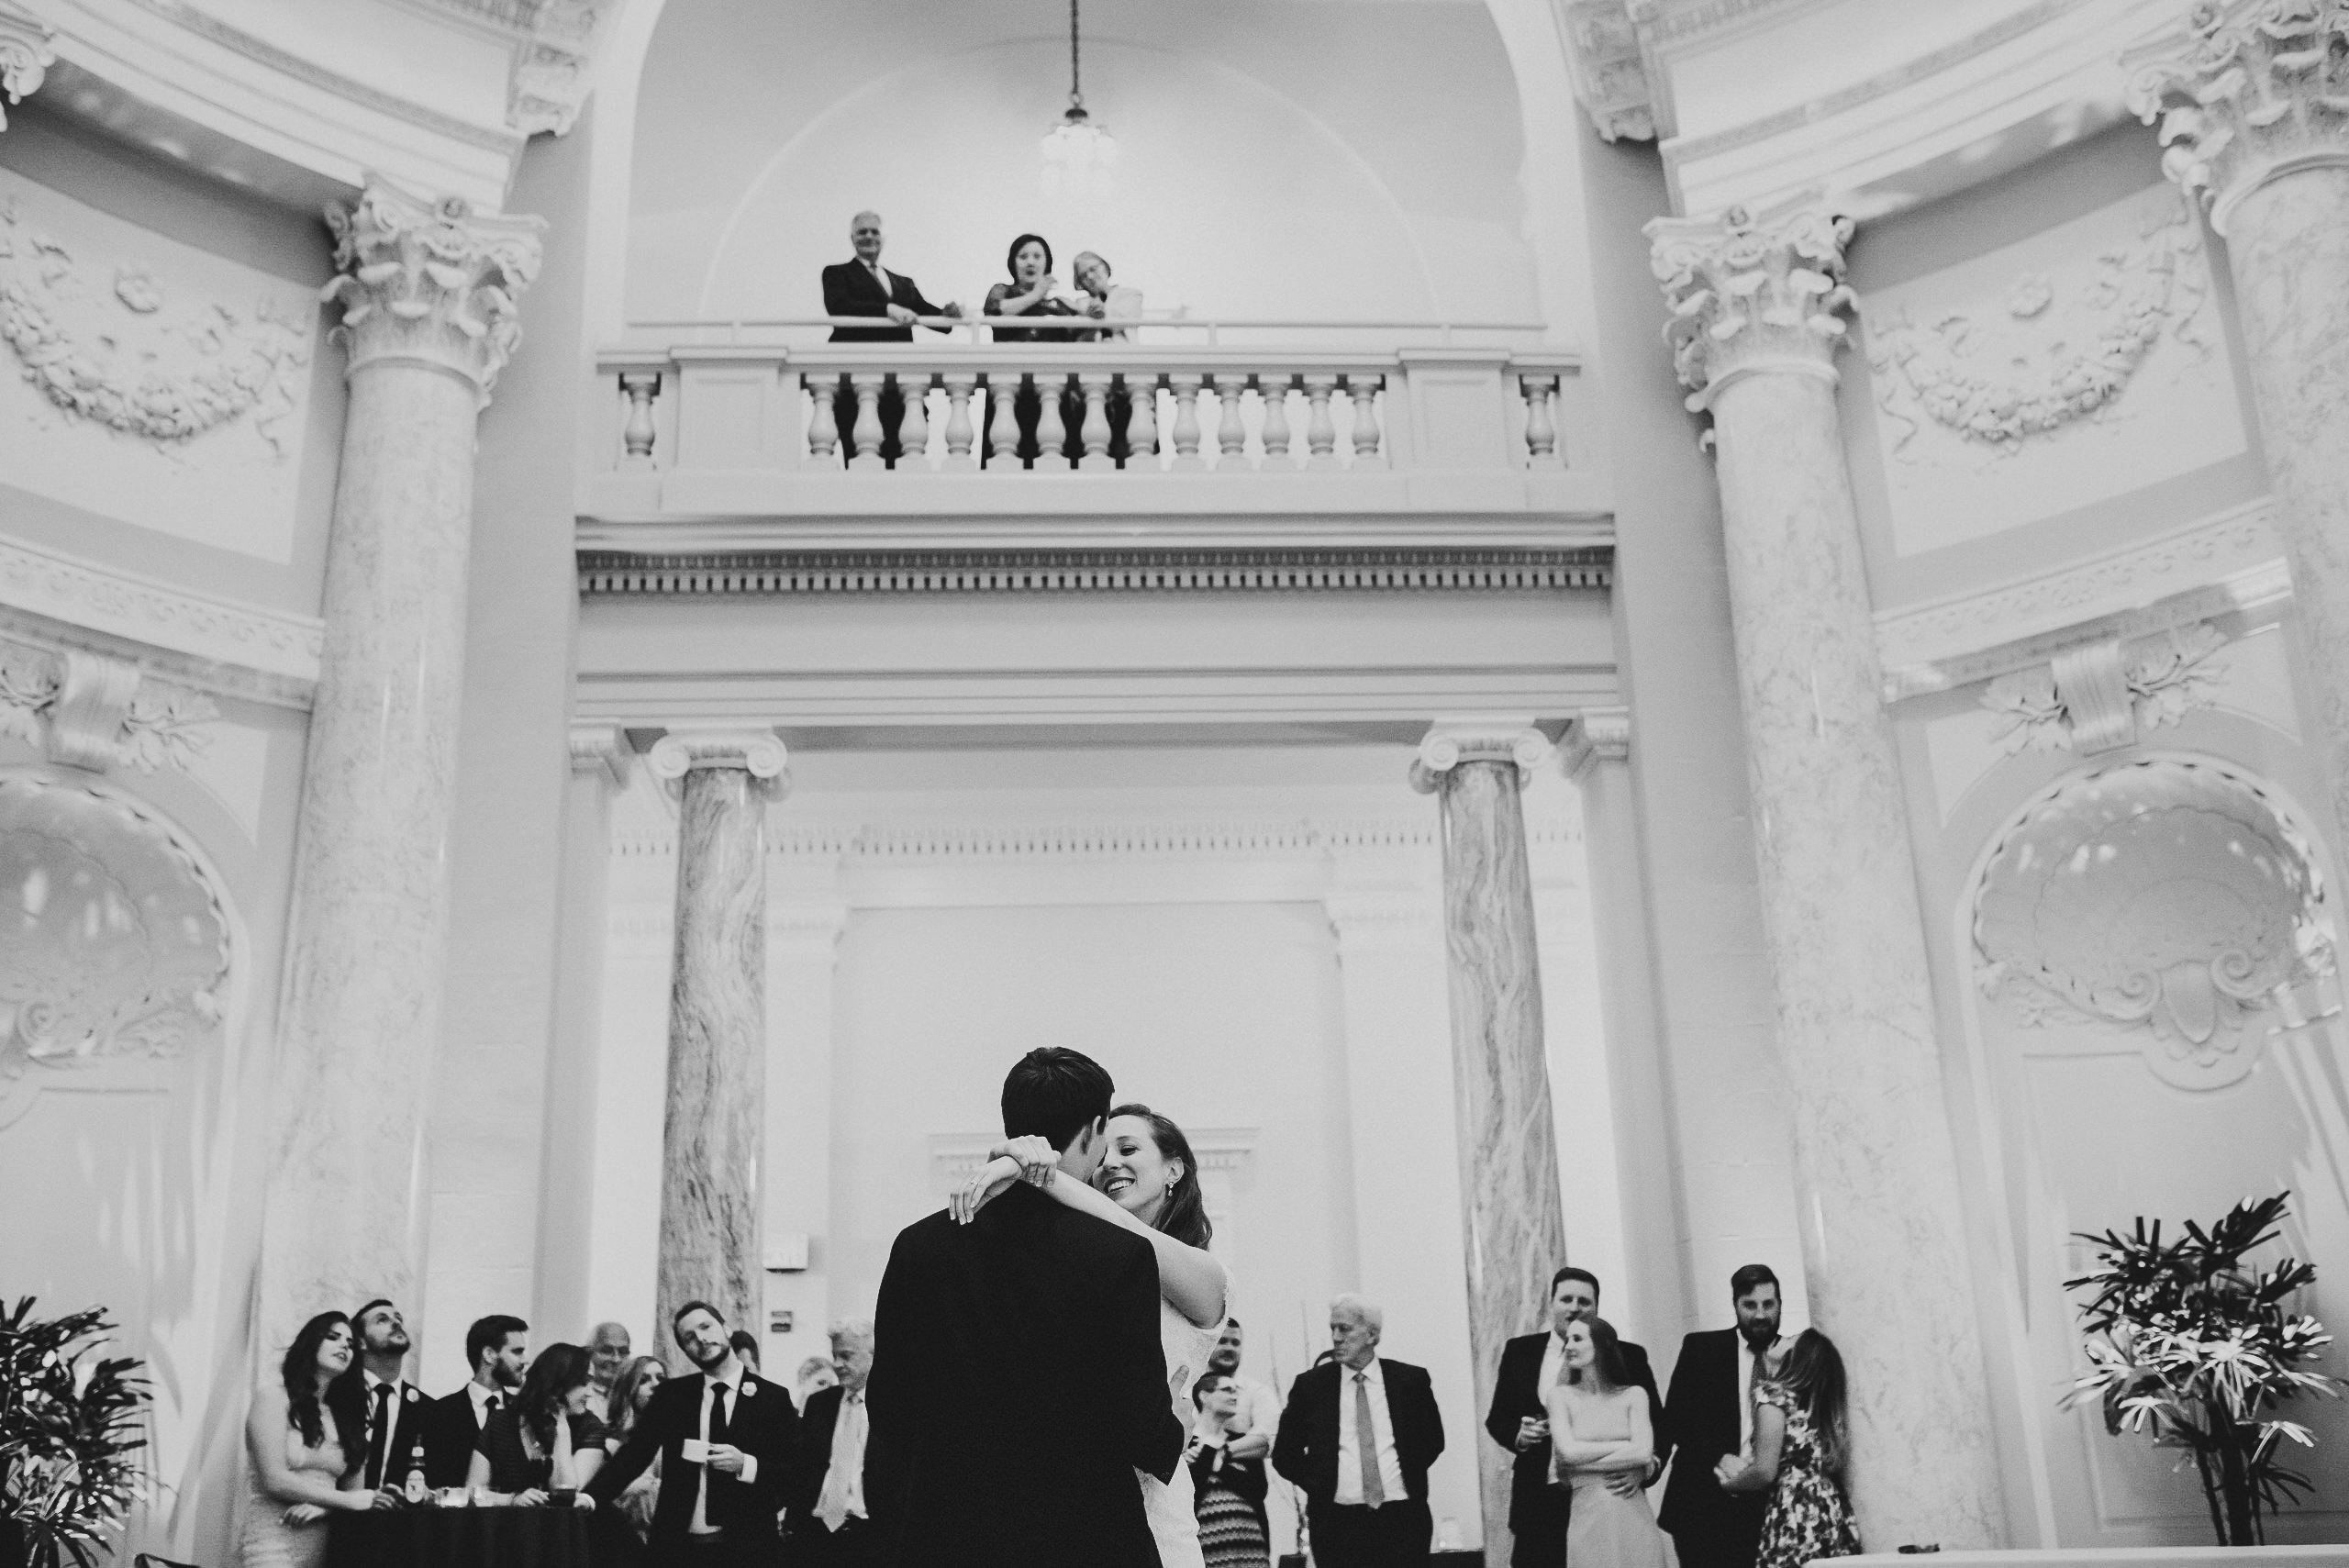 The wedding of John and Elizabeth // Location: Ceremony - Washington D.C. War Memorial. Reception - Carnegie Institute for Science // Photographer: Mantas Kubilinskas // (Photo credit: Mantas Kubilinskas/ www.mantasphoto.com)